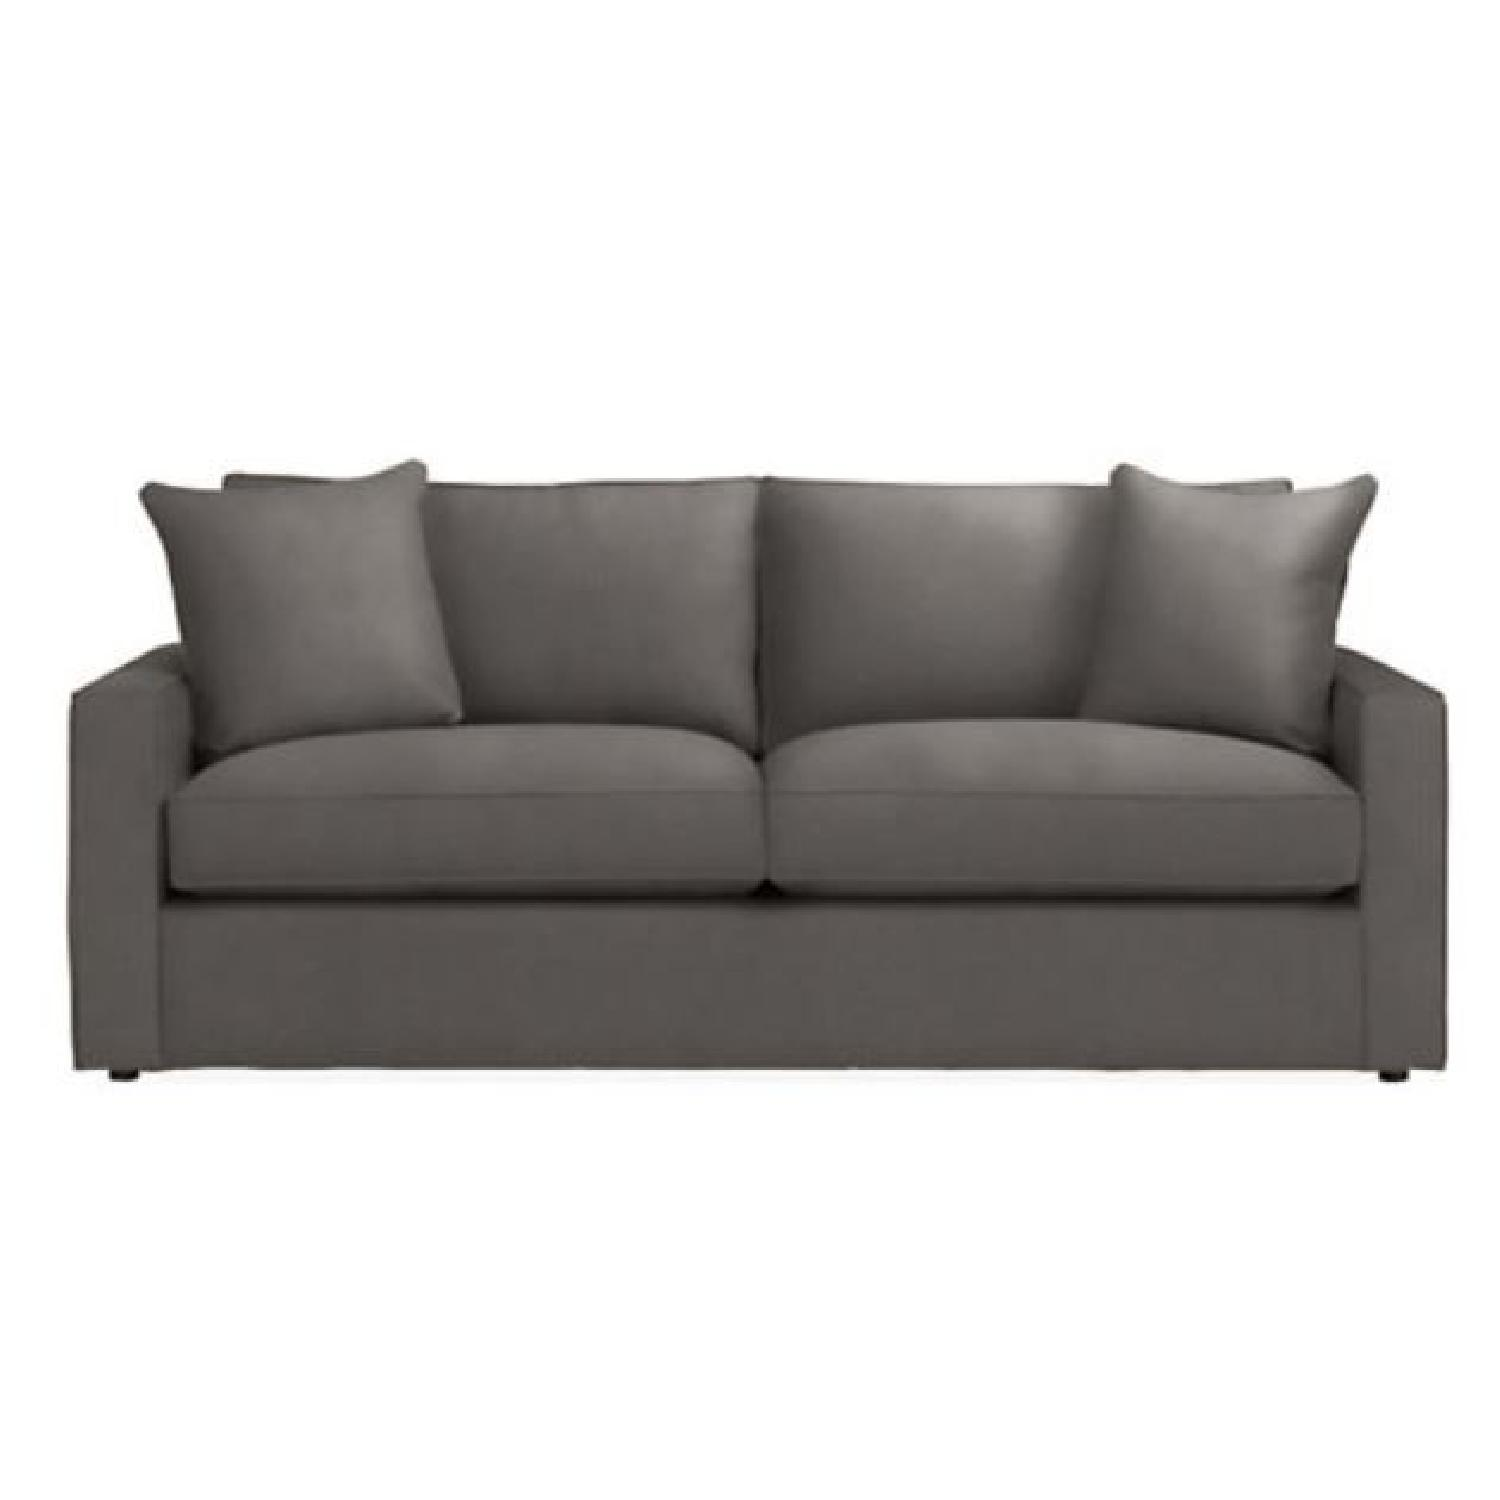 Room & Board York Sofa